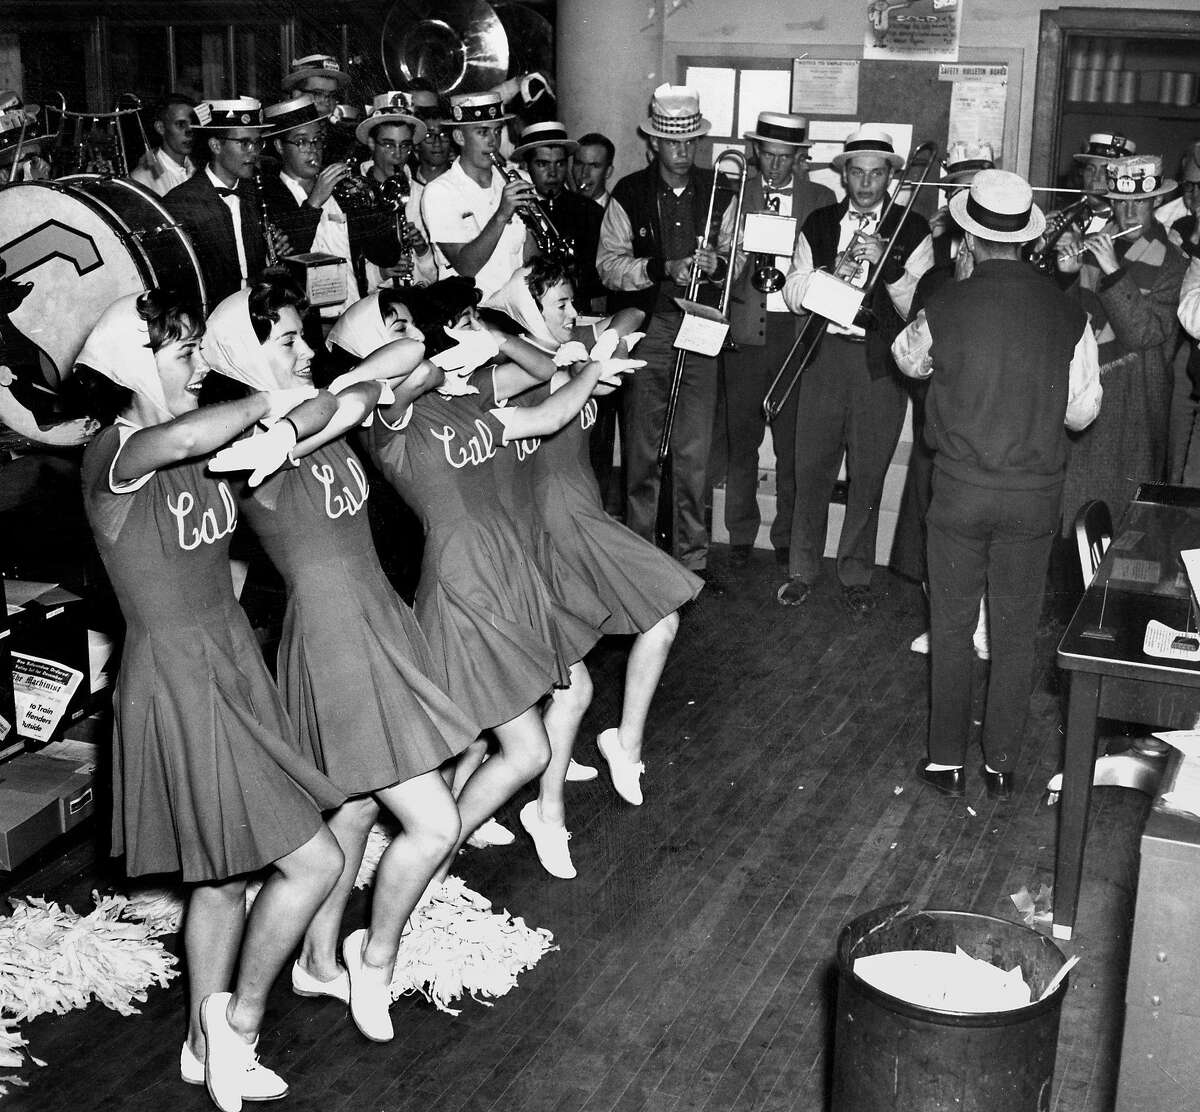 Nov. 23, 1961: The UC Berkeley marching band and cheerleaders perform in the San Francisco Chronicle newsroom in 1961.